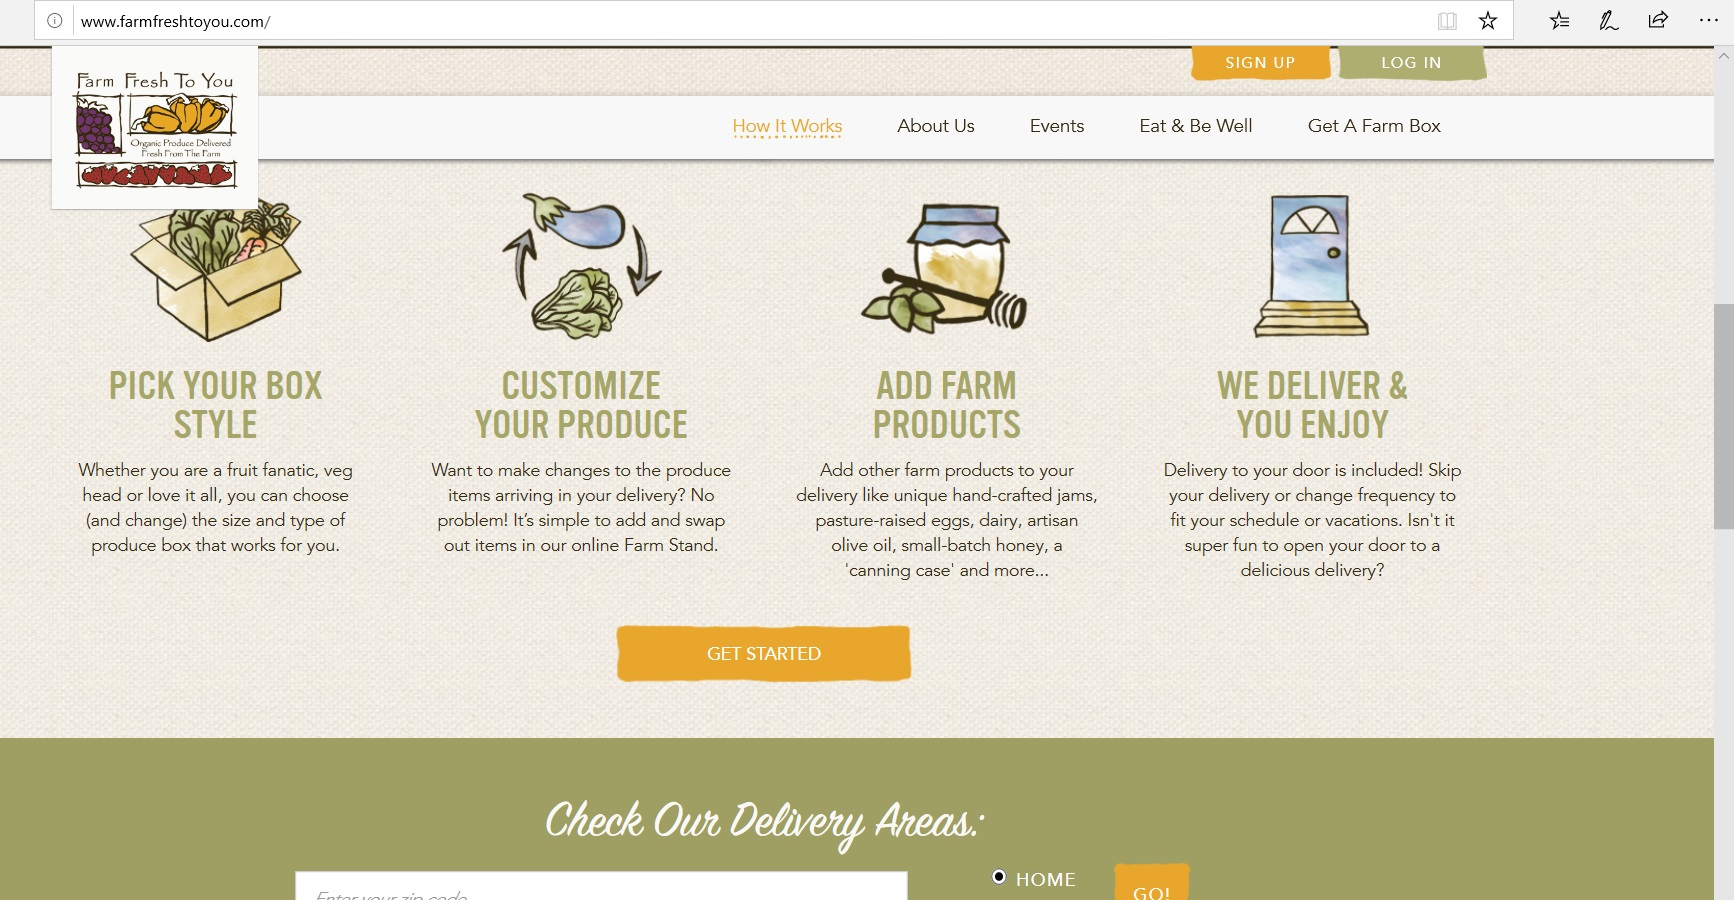 Infographics on how to shop at Farm Fresh To You.